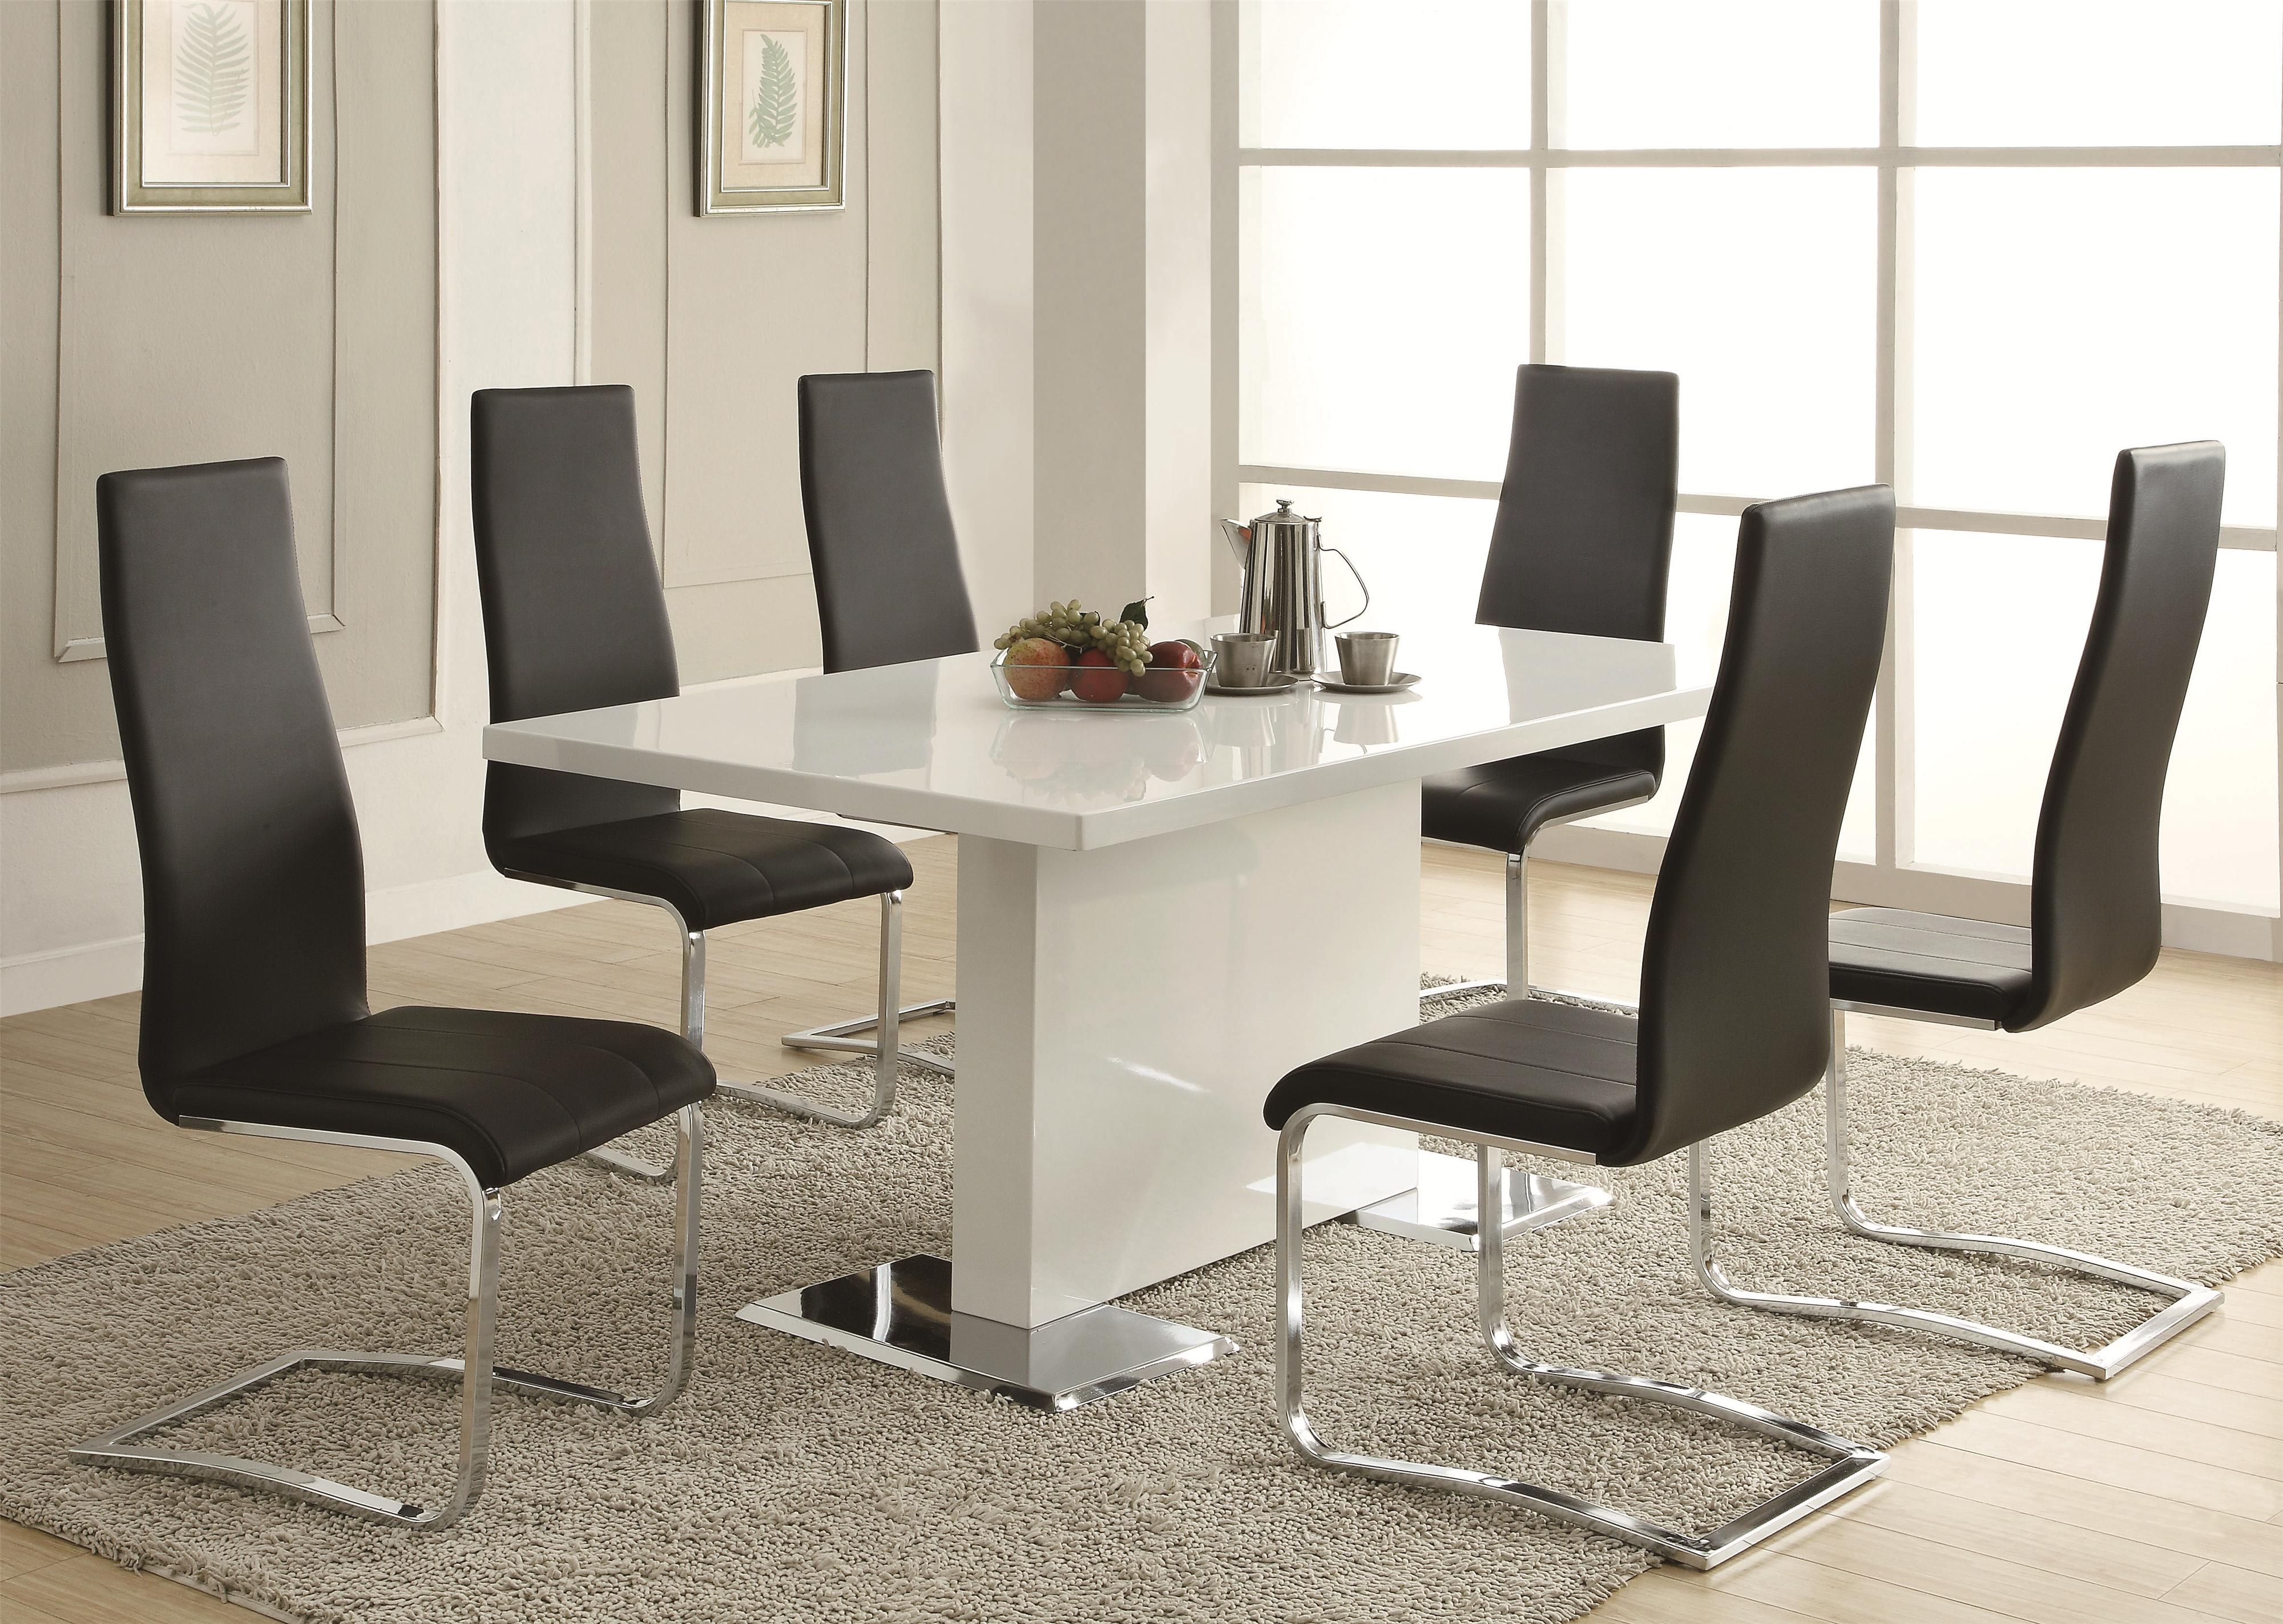 Cozy Coaster Modern Dining 7 Piece White Table u0026 White Upholstered Chairs Set - modern dining table sets